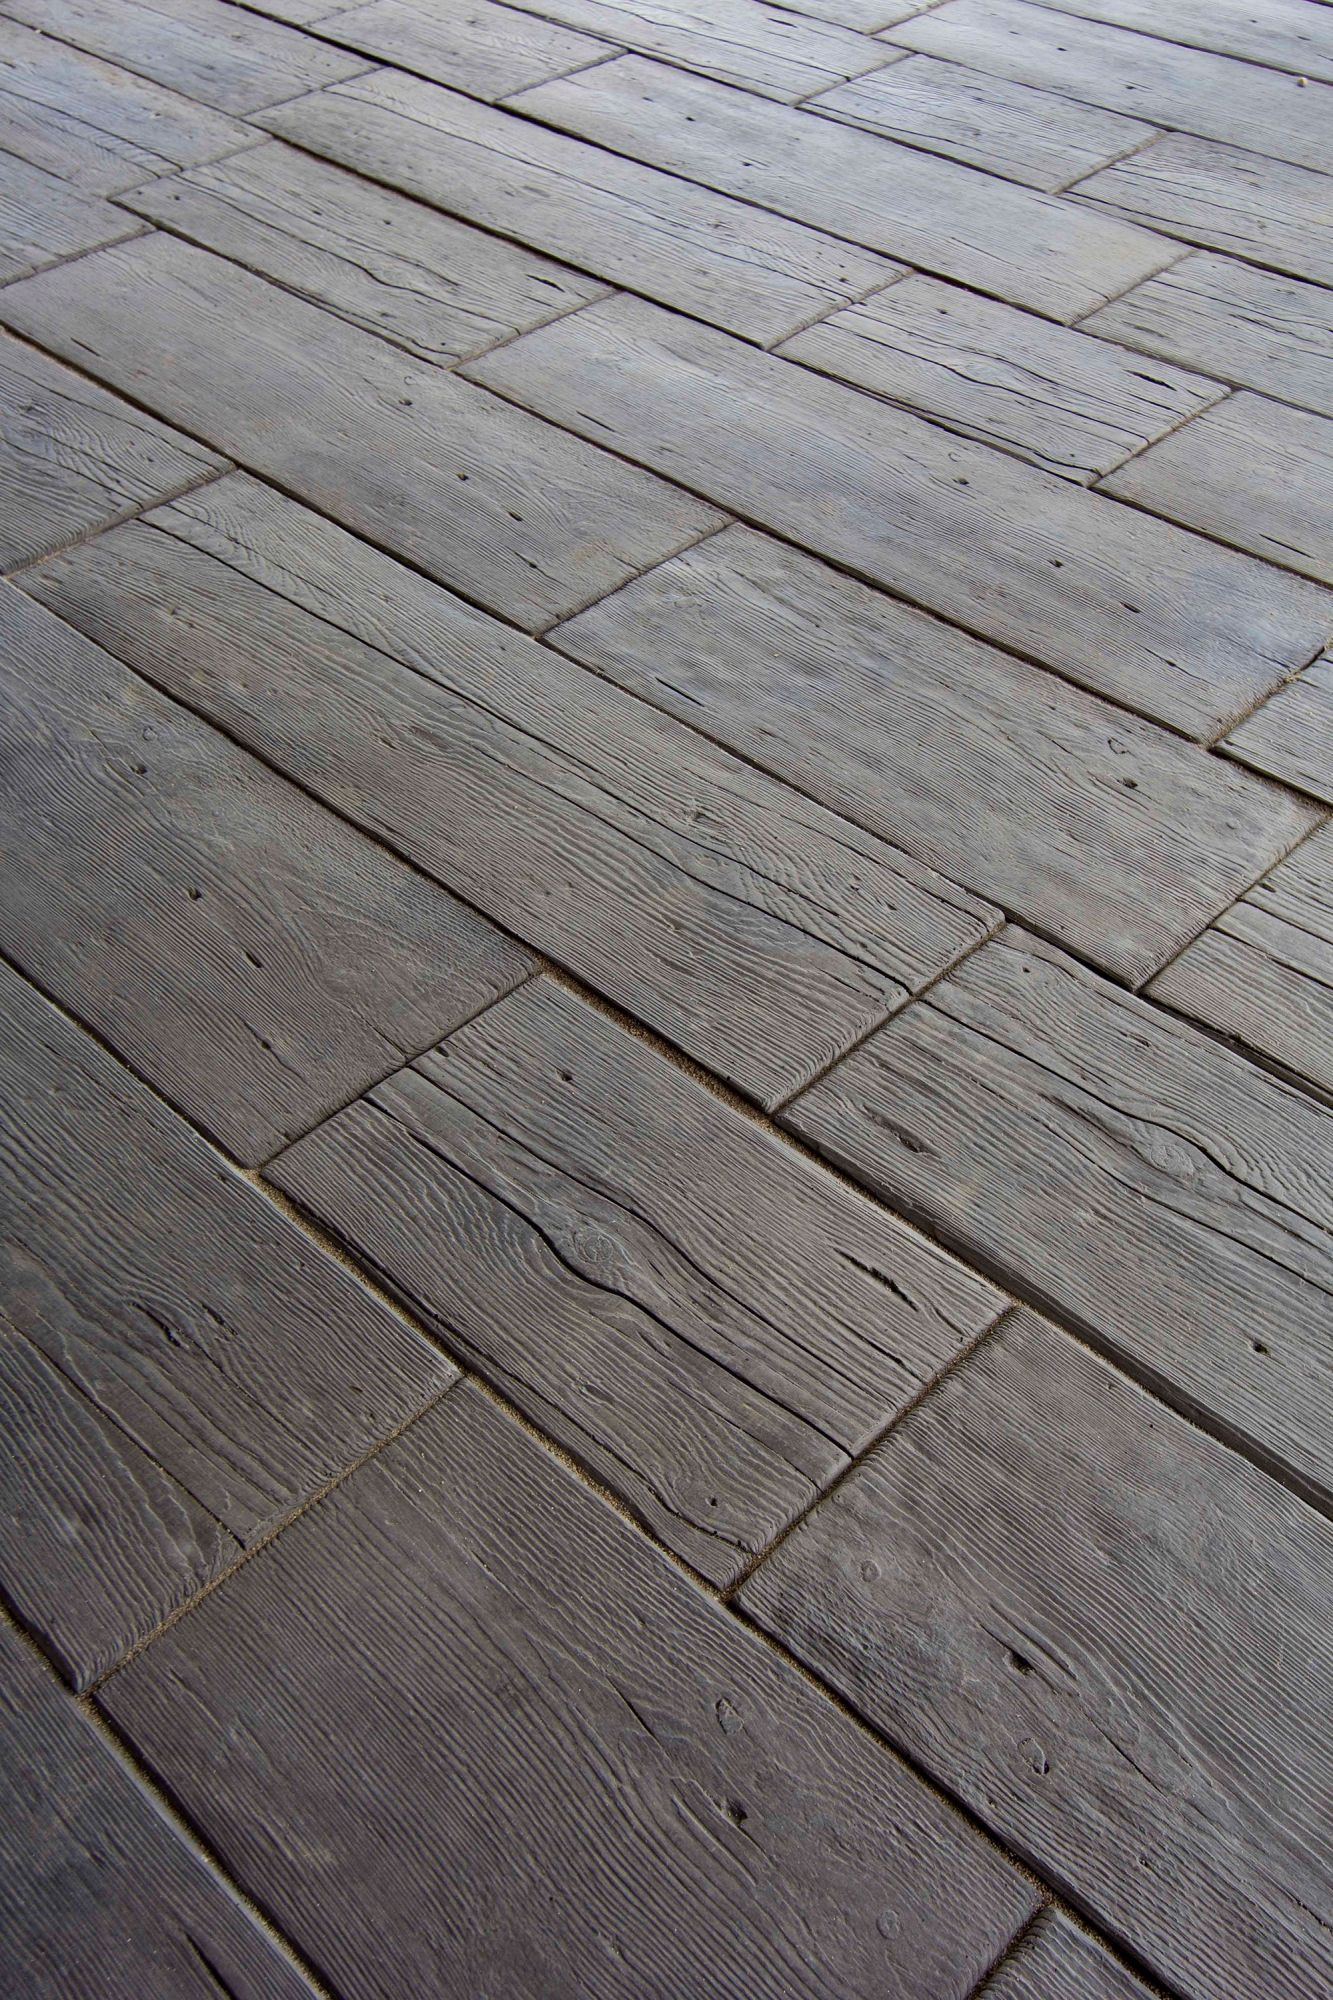 how to put down hardwood floor on concrete of rustic wood nope 2 thick concrete pavers barn plank landscape intended for rustic wood nope 2 thick concrete pavers barn plank landscape tile by silver creek stoneworks rochester mn ideal for outdoor paths decks etc